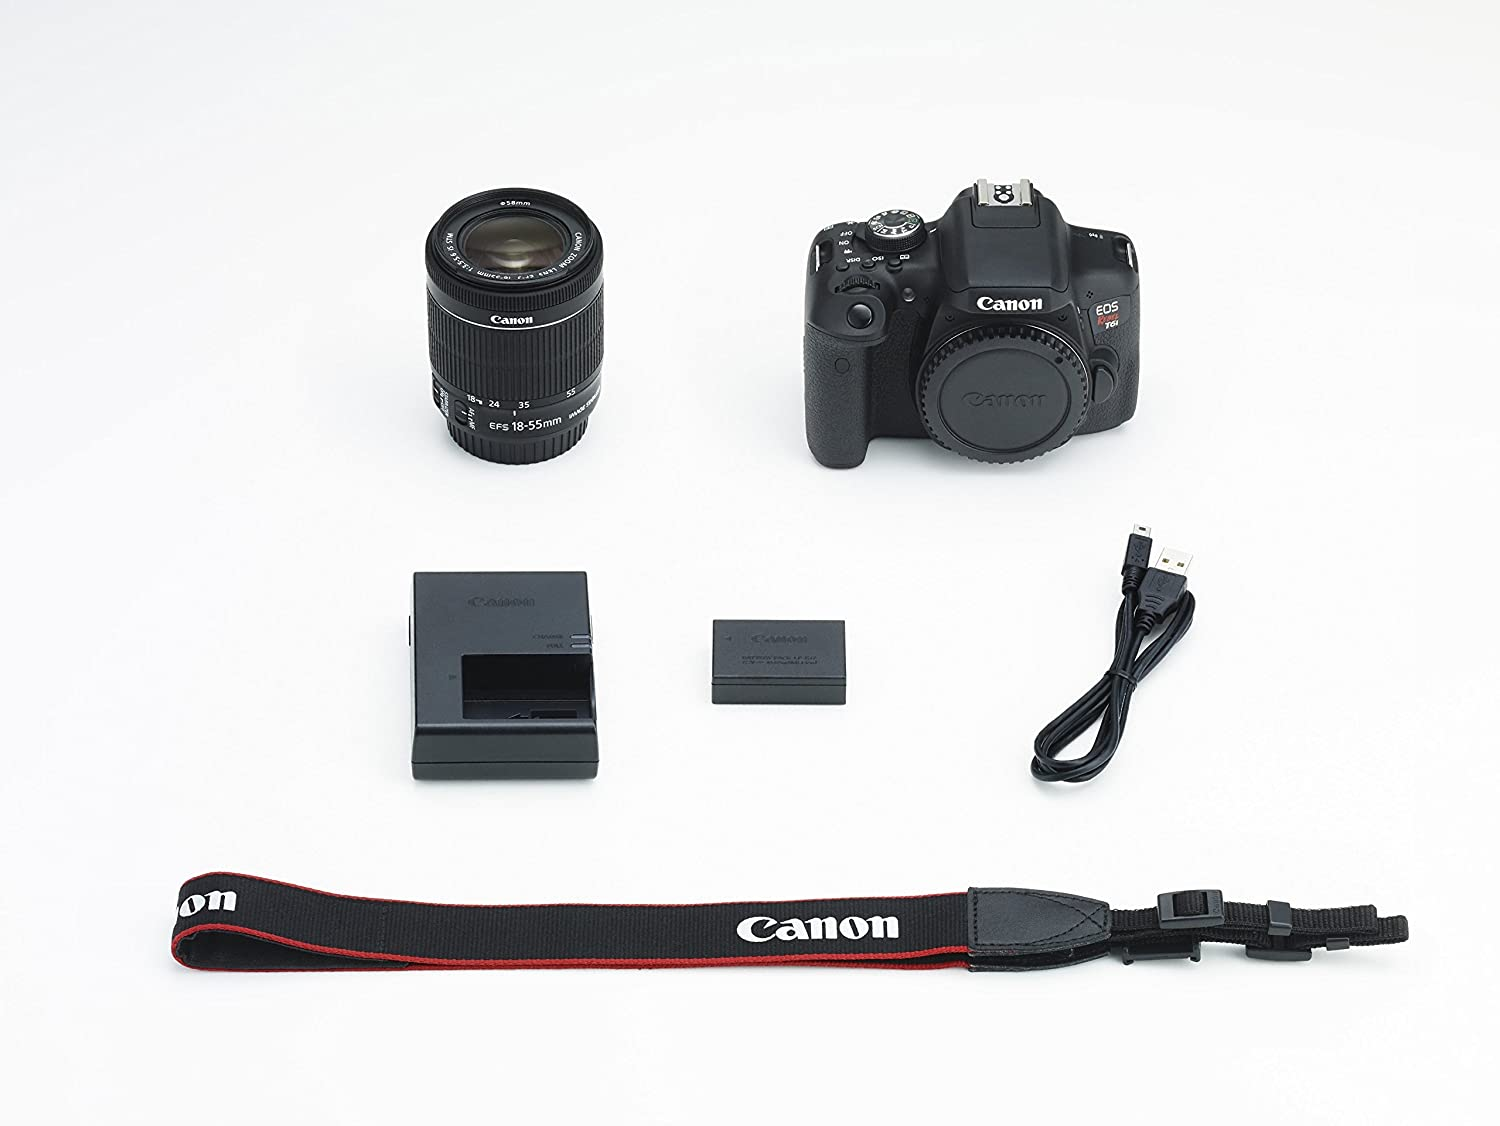 Canon EOS Rebel T6i + EF-S 18-55mm f/3.5-5.6 IS STM Kit Juego de ...